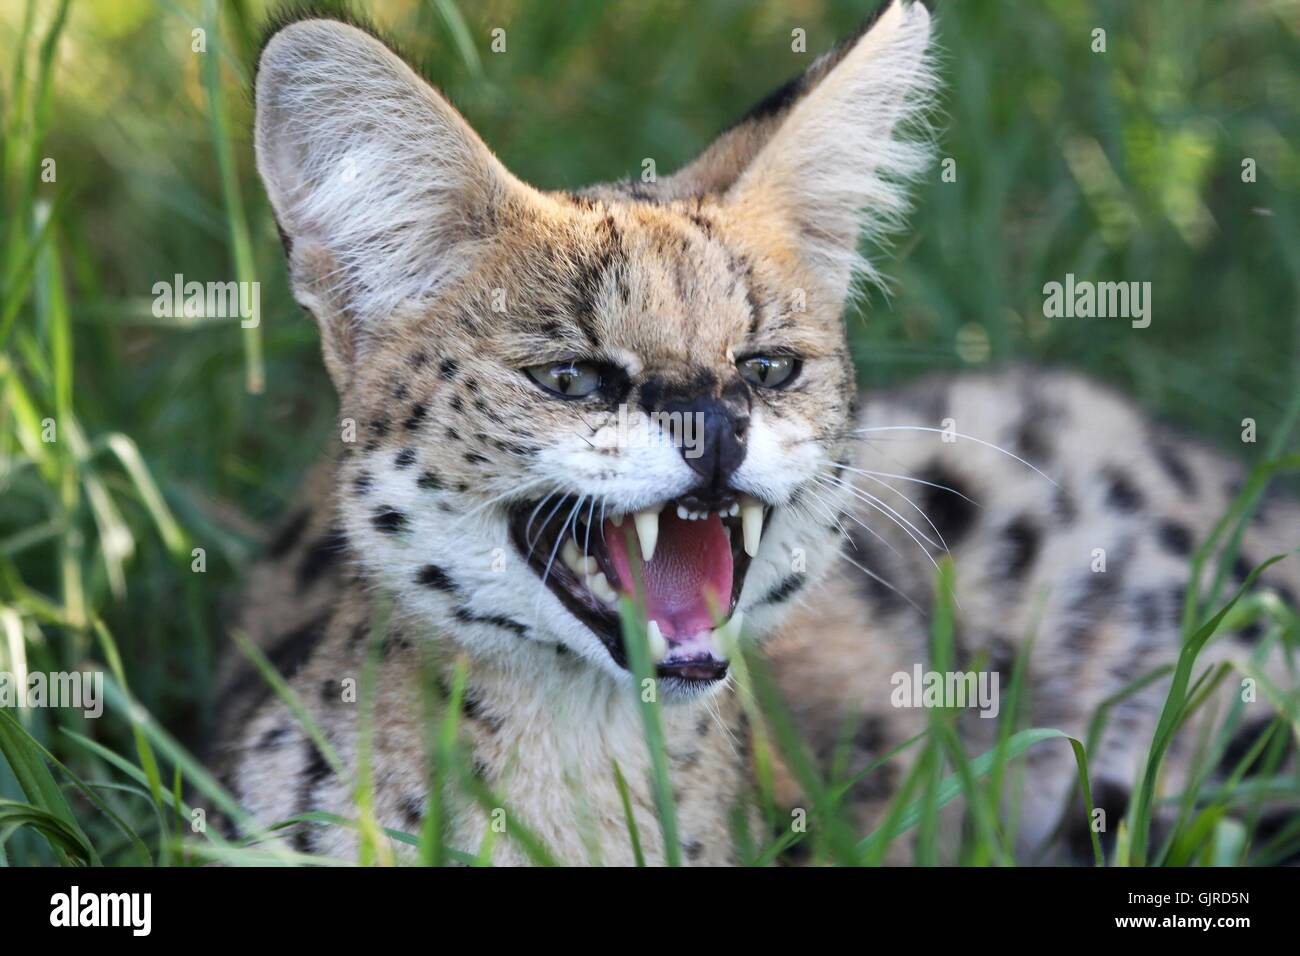 Angry Serval Wild Cat - Stock Image